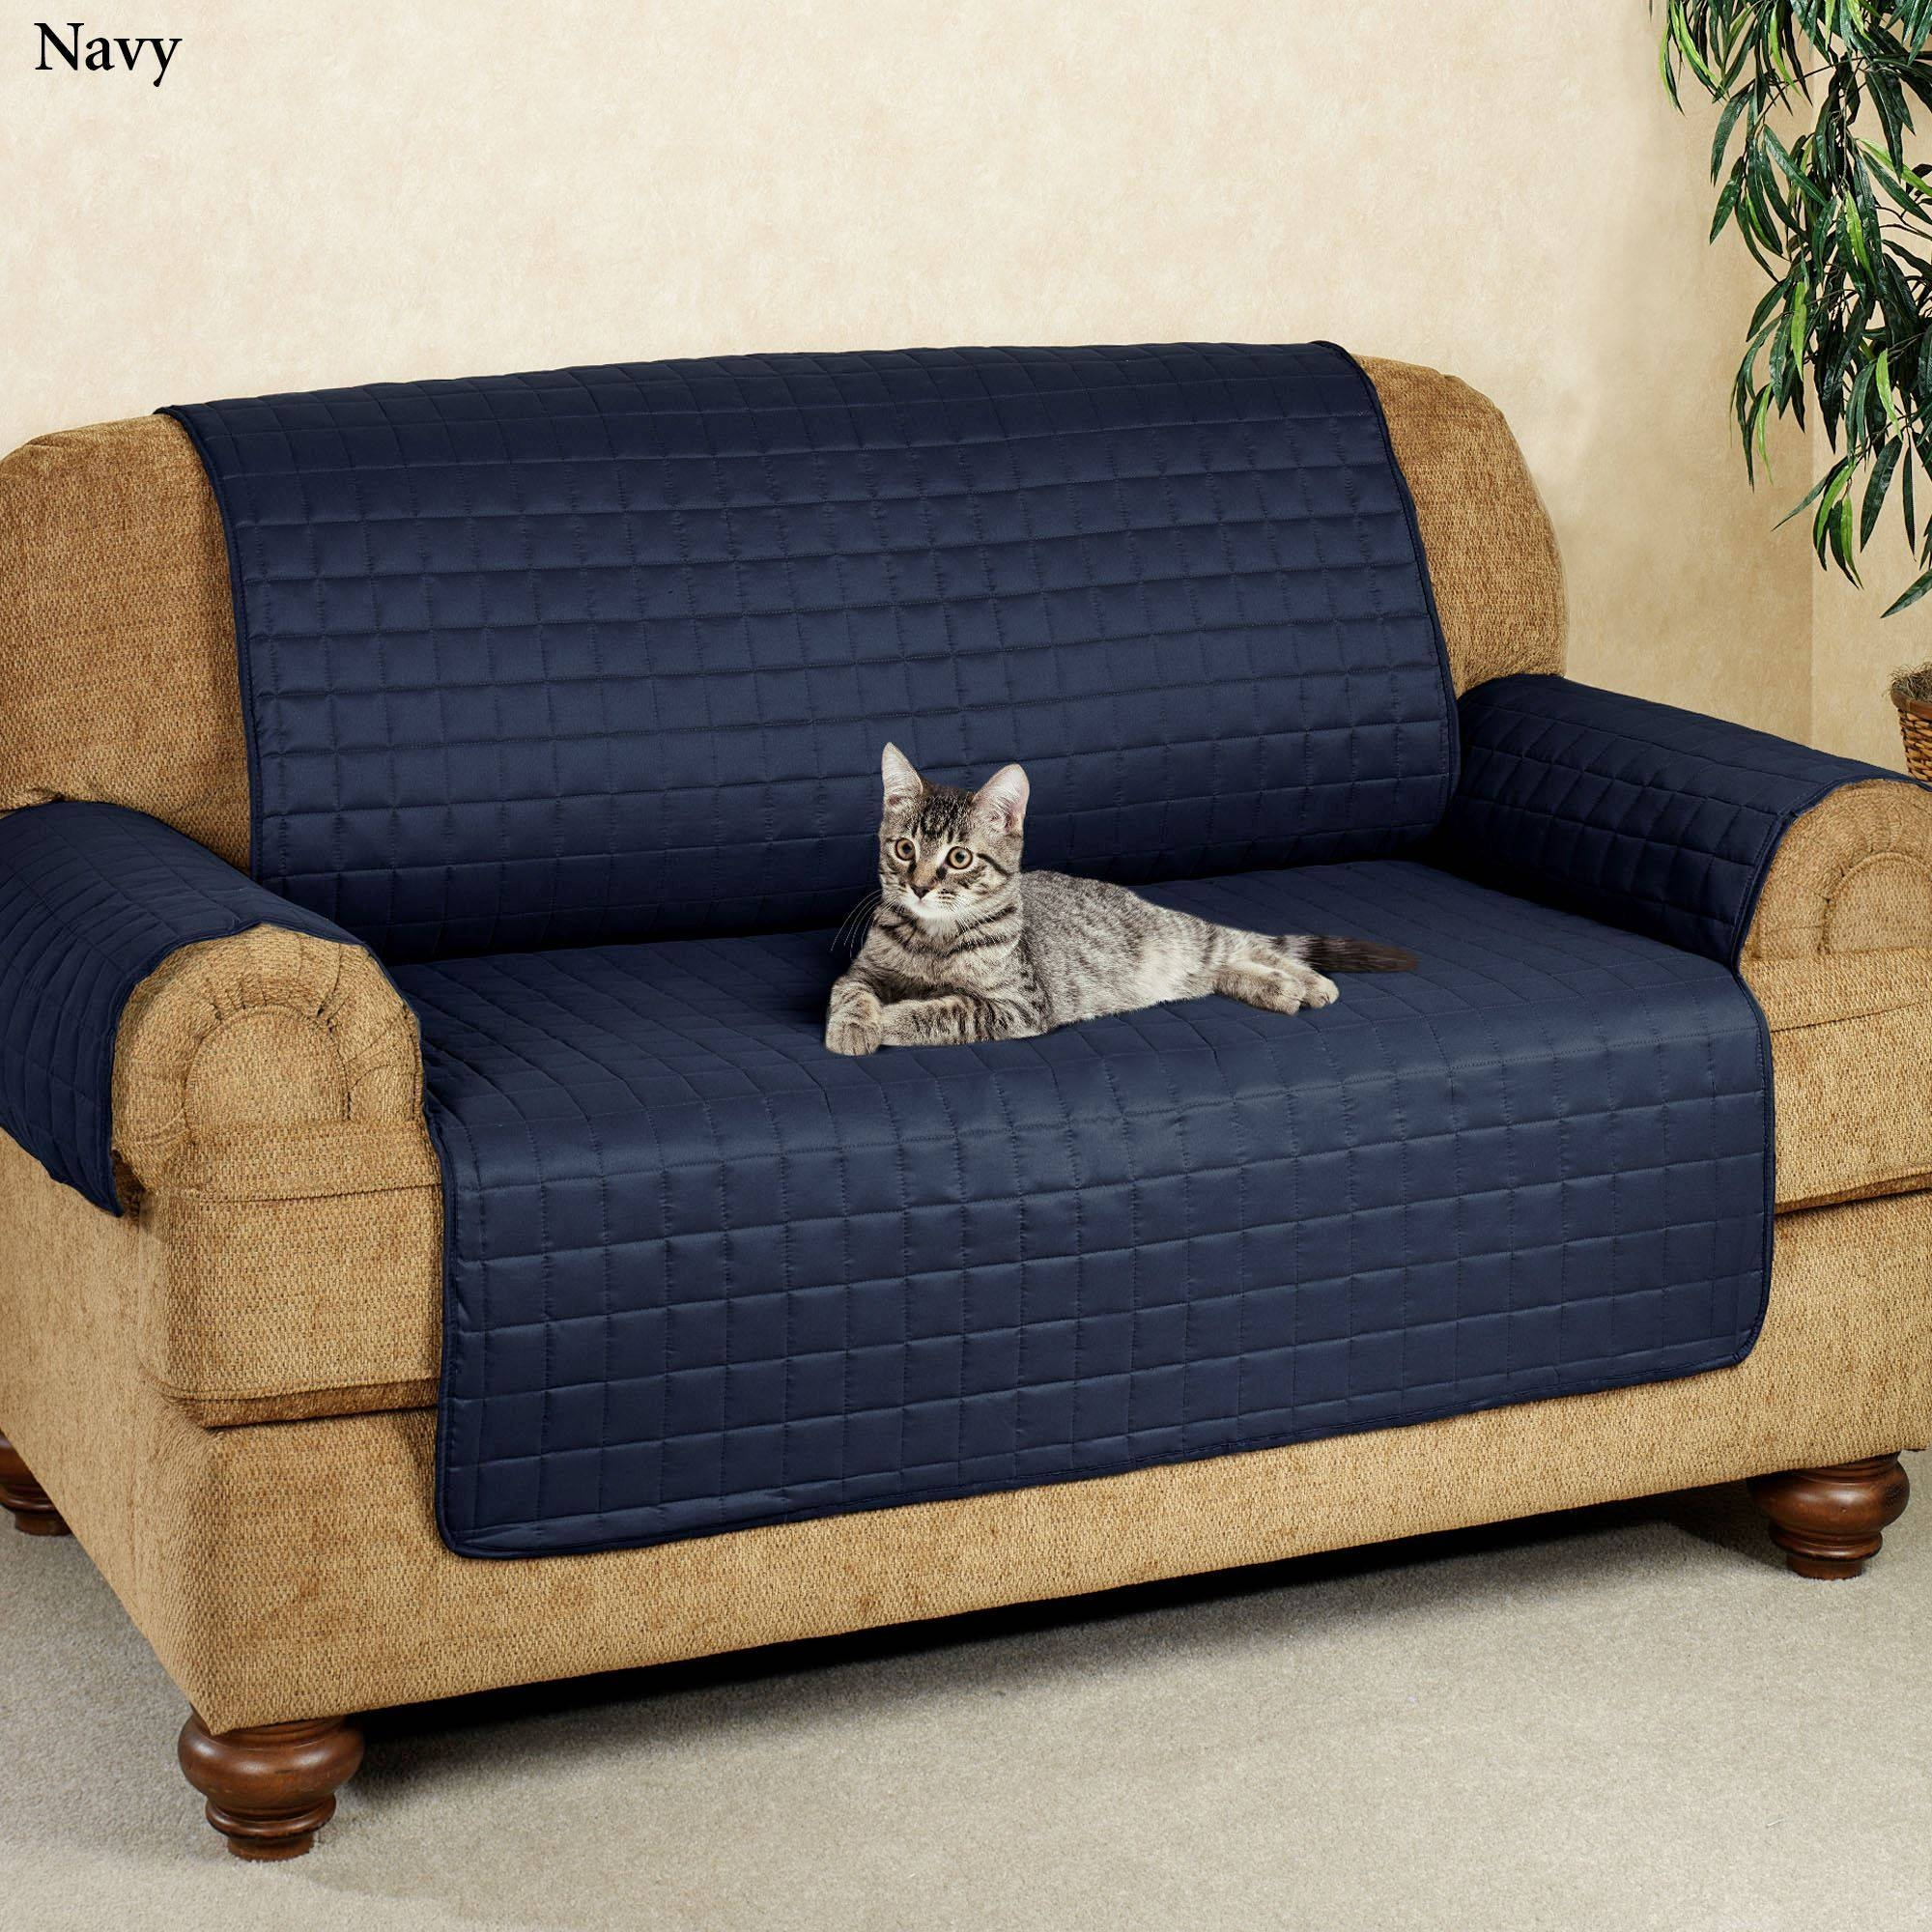 Microfiber Pet Furniture Covers With Tuck In Flaps inside Sofa Settee Covers (Image 21 of 30)